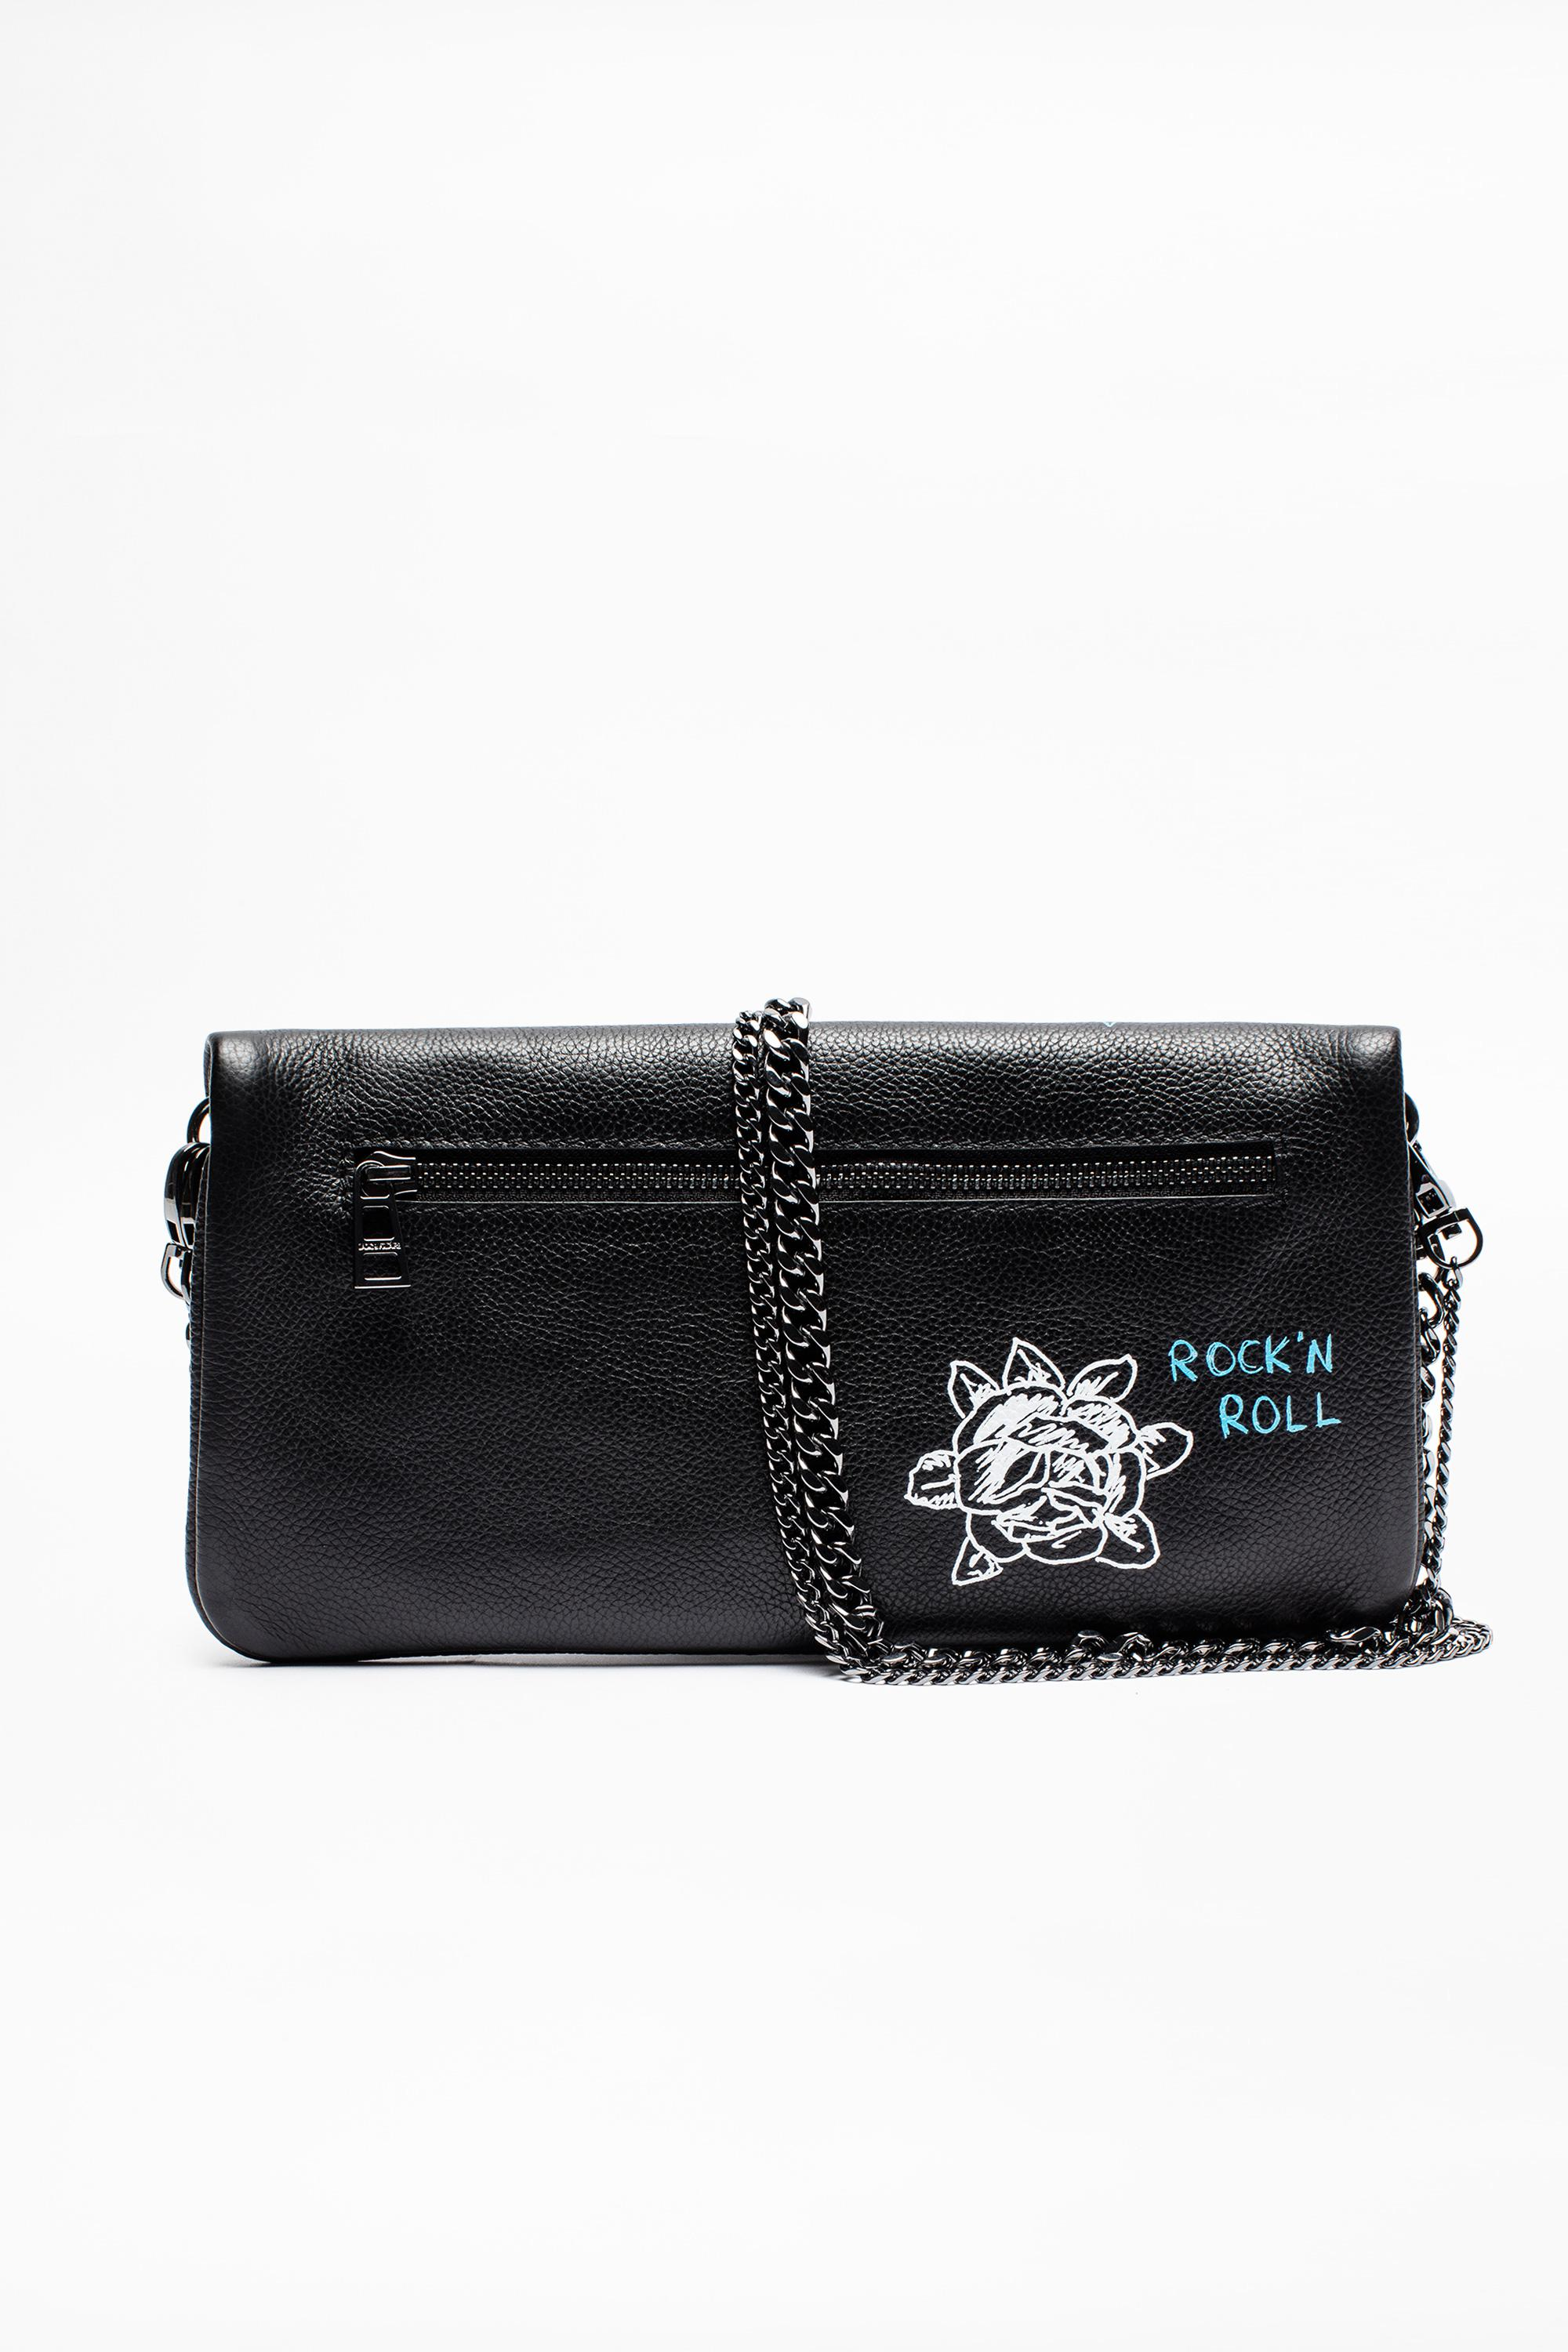 e72eef88ab35 Lyst - Zadig   Voltaire Rock Tag Bag in Black